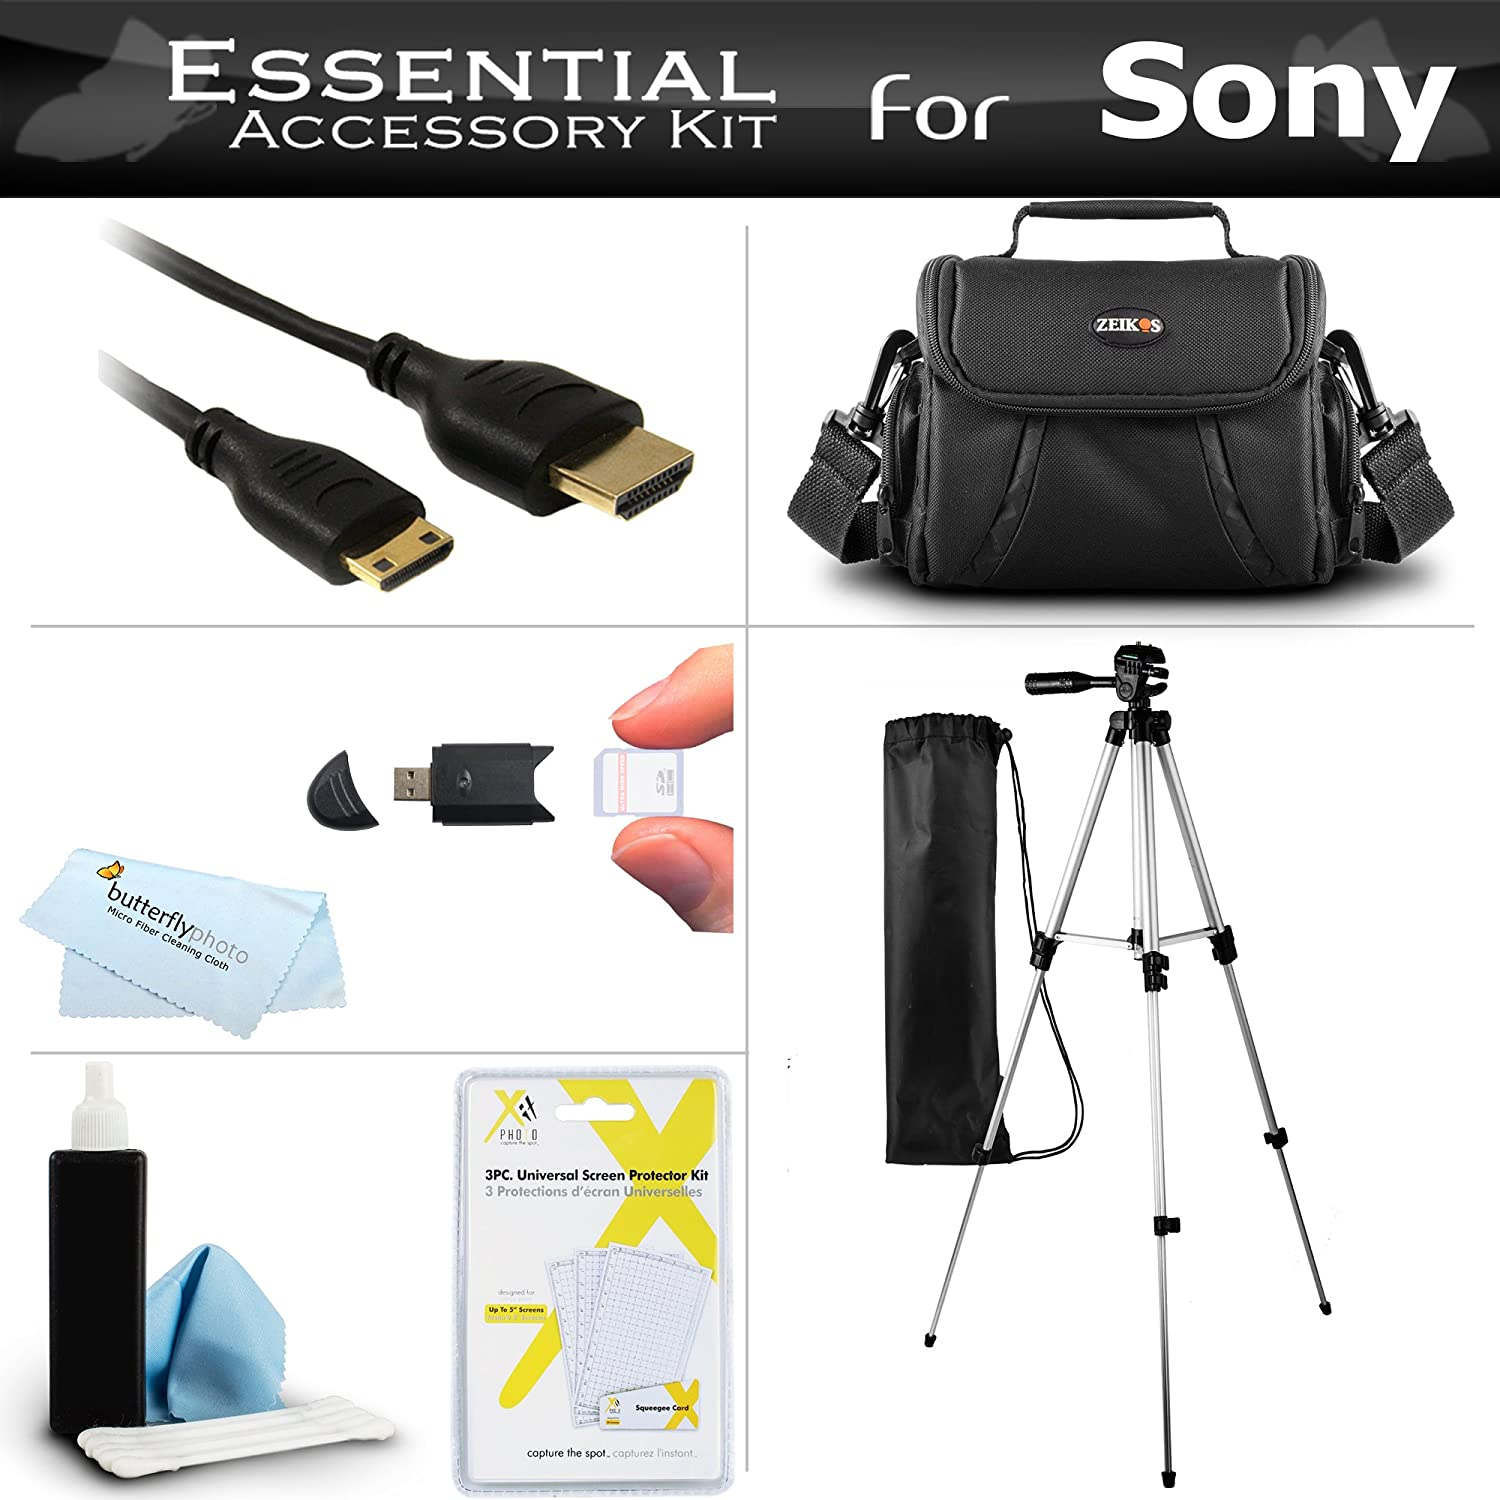 "Essential Accessory Kit For Sony HDR-CX130 HDR-CX160 HDR-CX360V HDR-CX560V HDR-CX700V HDR-PJ10 HDR-PJ30V HDR-PJ50V HDR-TD10 HDR-XR160 Camcorder Includes 50"" Tripod + Case + Mini HDMI Cable + More"